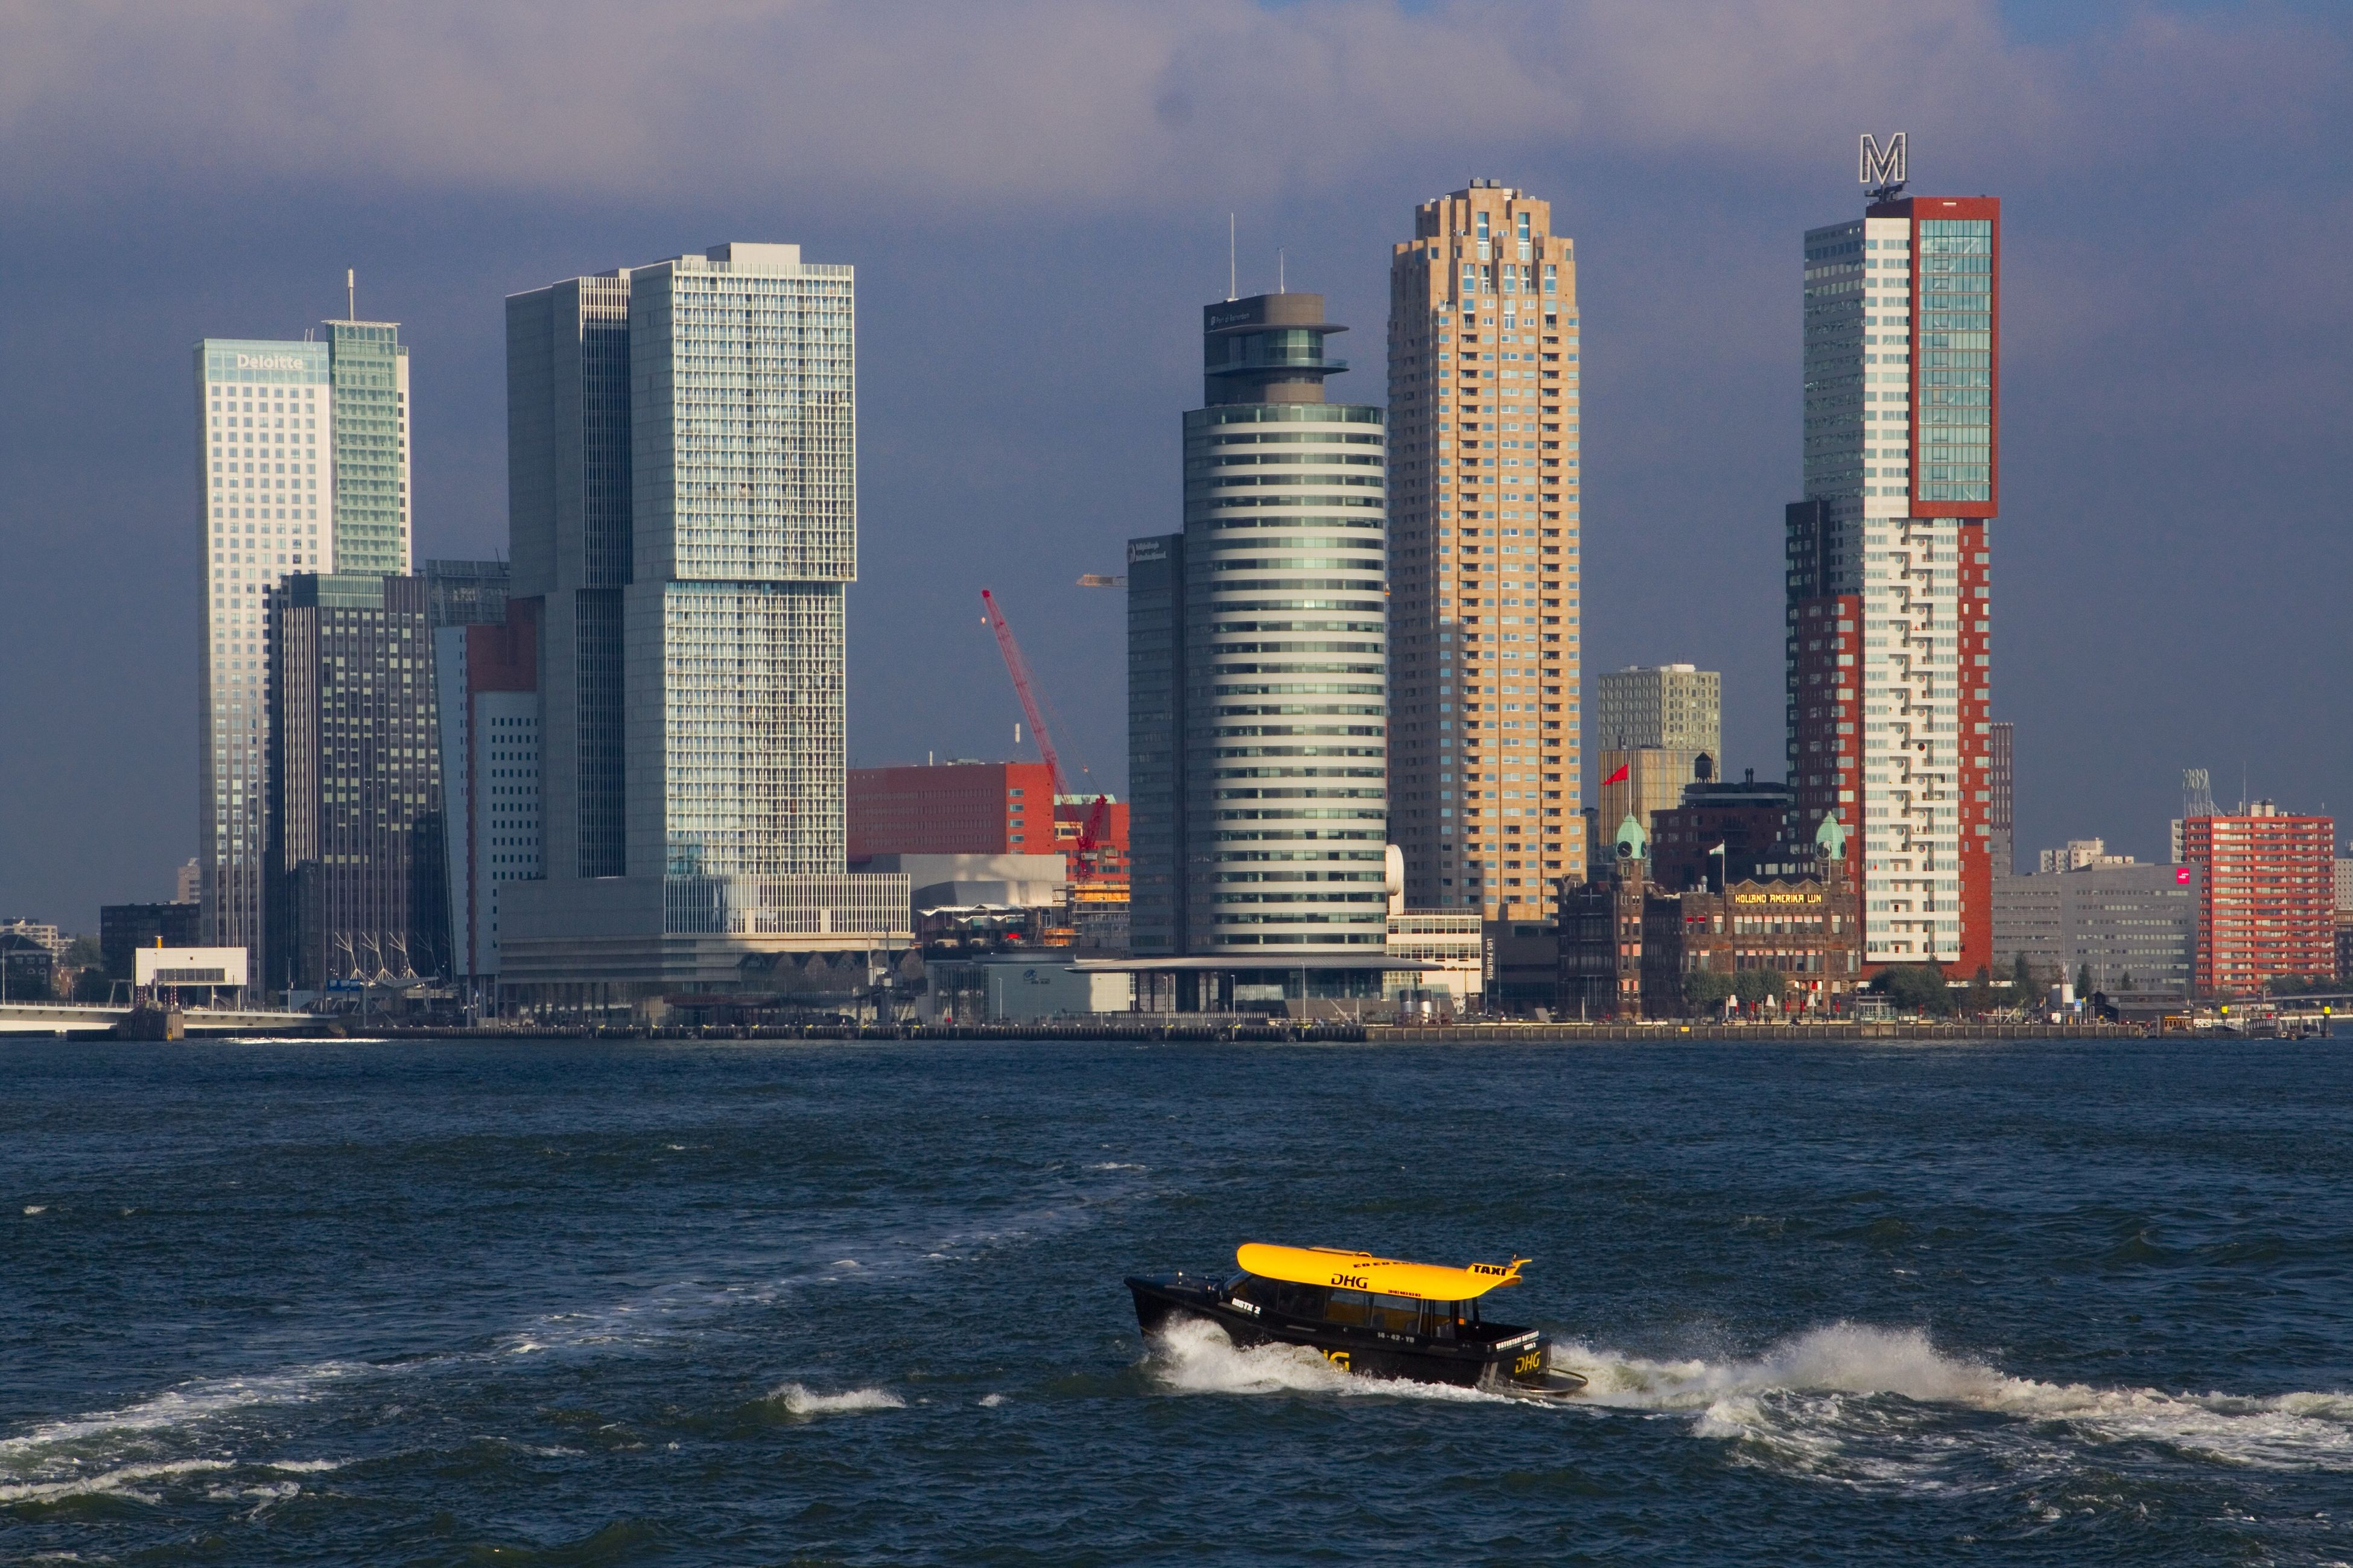 Rotterdam Netherlands Netherlands ❤ Harbor Harbour Harbour View Ship Ships Skyline Built Structure Building Buildings Architecture Architecture Architecture_collection Water Waterfront Water_collection